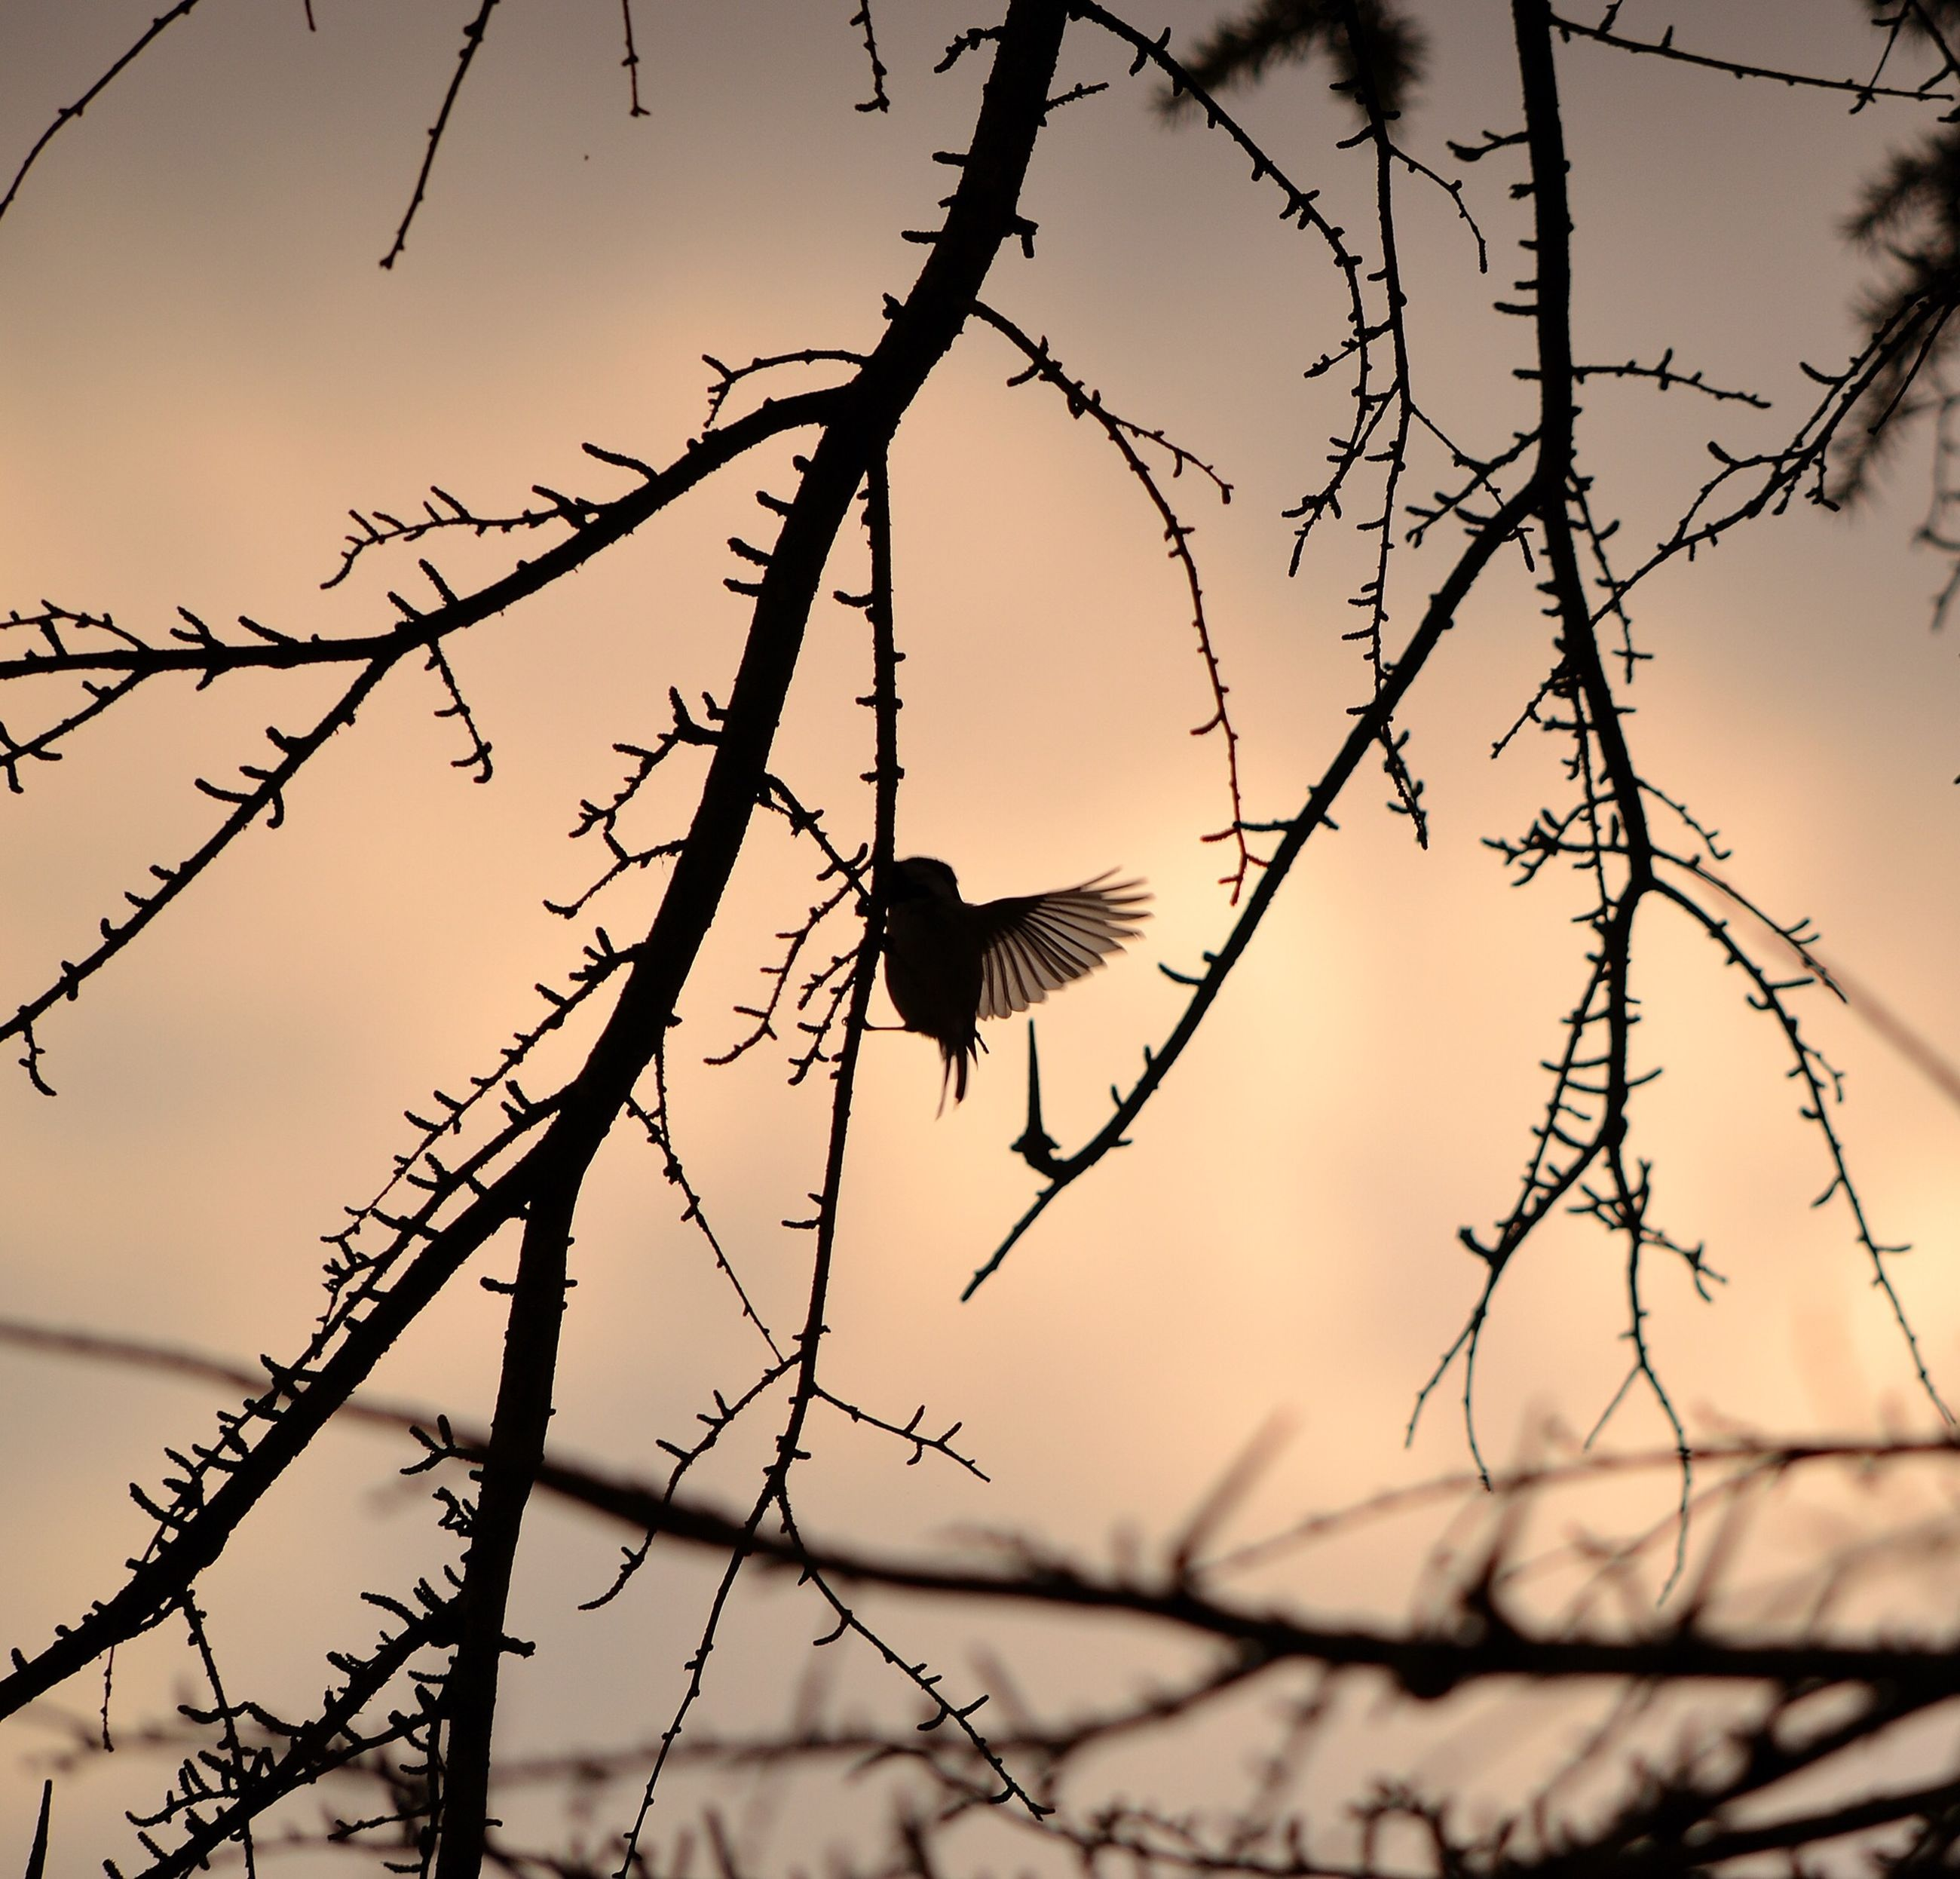 bird, animal themes, animals in the wild, wildlife, perching, one animal, branch, silhouette, bare tree, focus on foreground, nature, sky, twig, low angle view, tree, outdoors, sunset, barbed wire, no people, tranquility